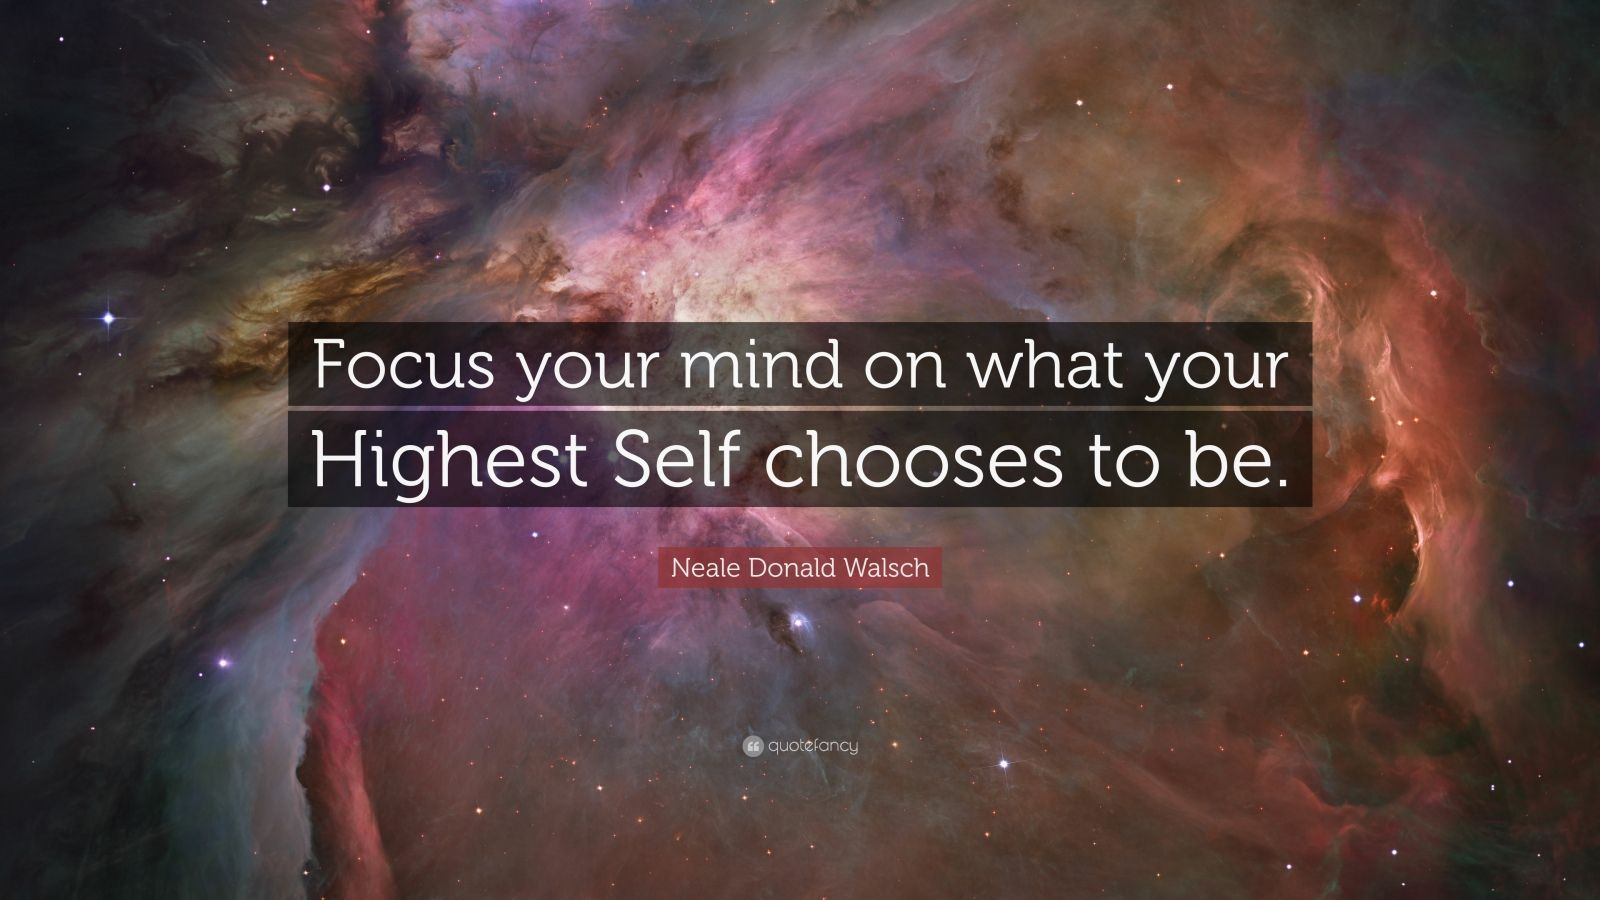 """Neale Donald Walsch Quote: """"Focus your mind on what your Highest Self chooses to be."""""""